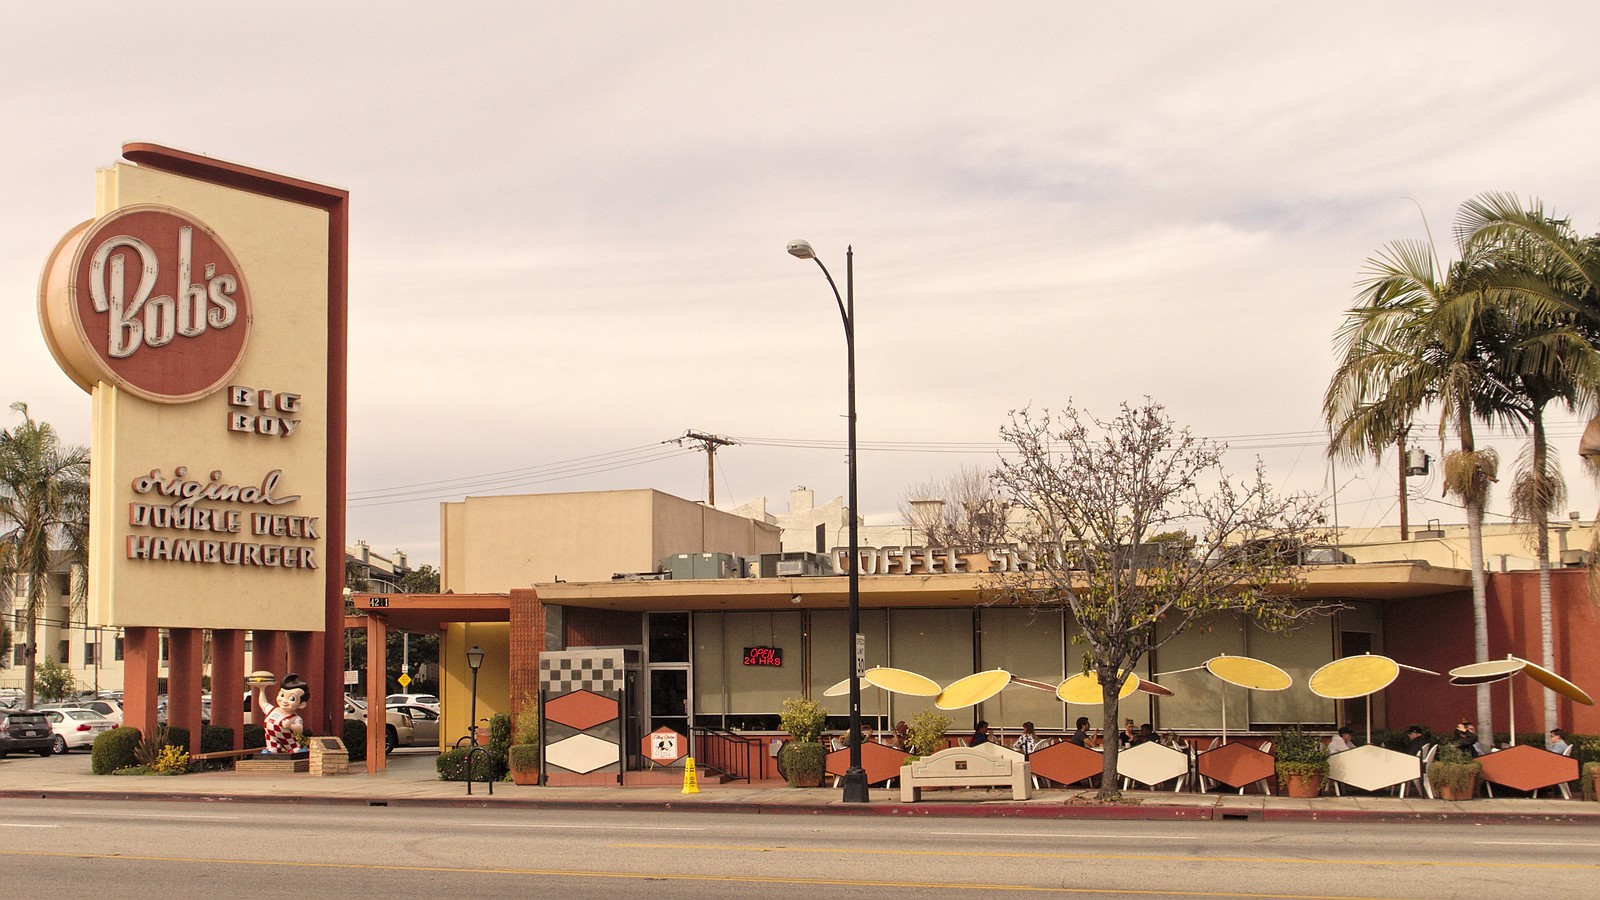 Bobs_big_boy_burbank_2014-01-21_2.jpg